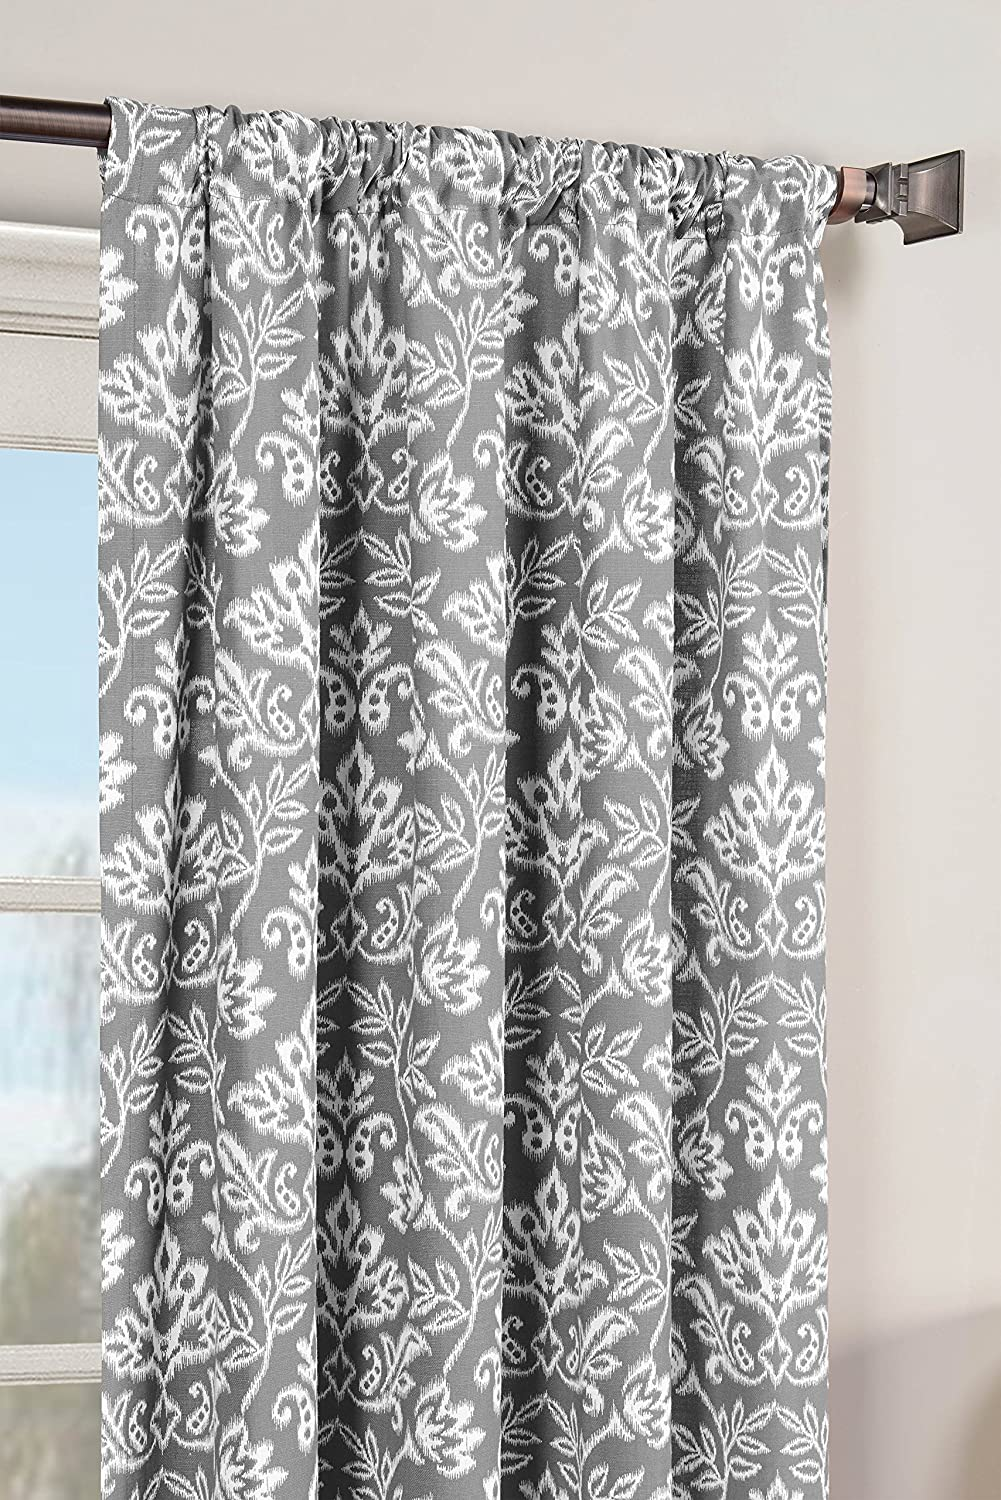 Window Elements Valencia Printed Cotton Extra Wide 104 x 84 in. Rod Pocket Curtain Panel Pair, Grey